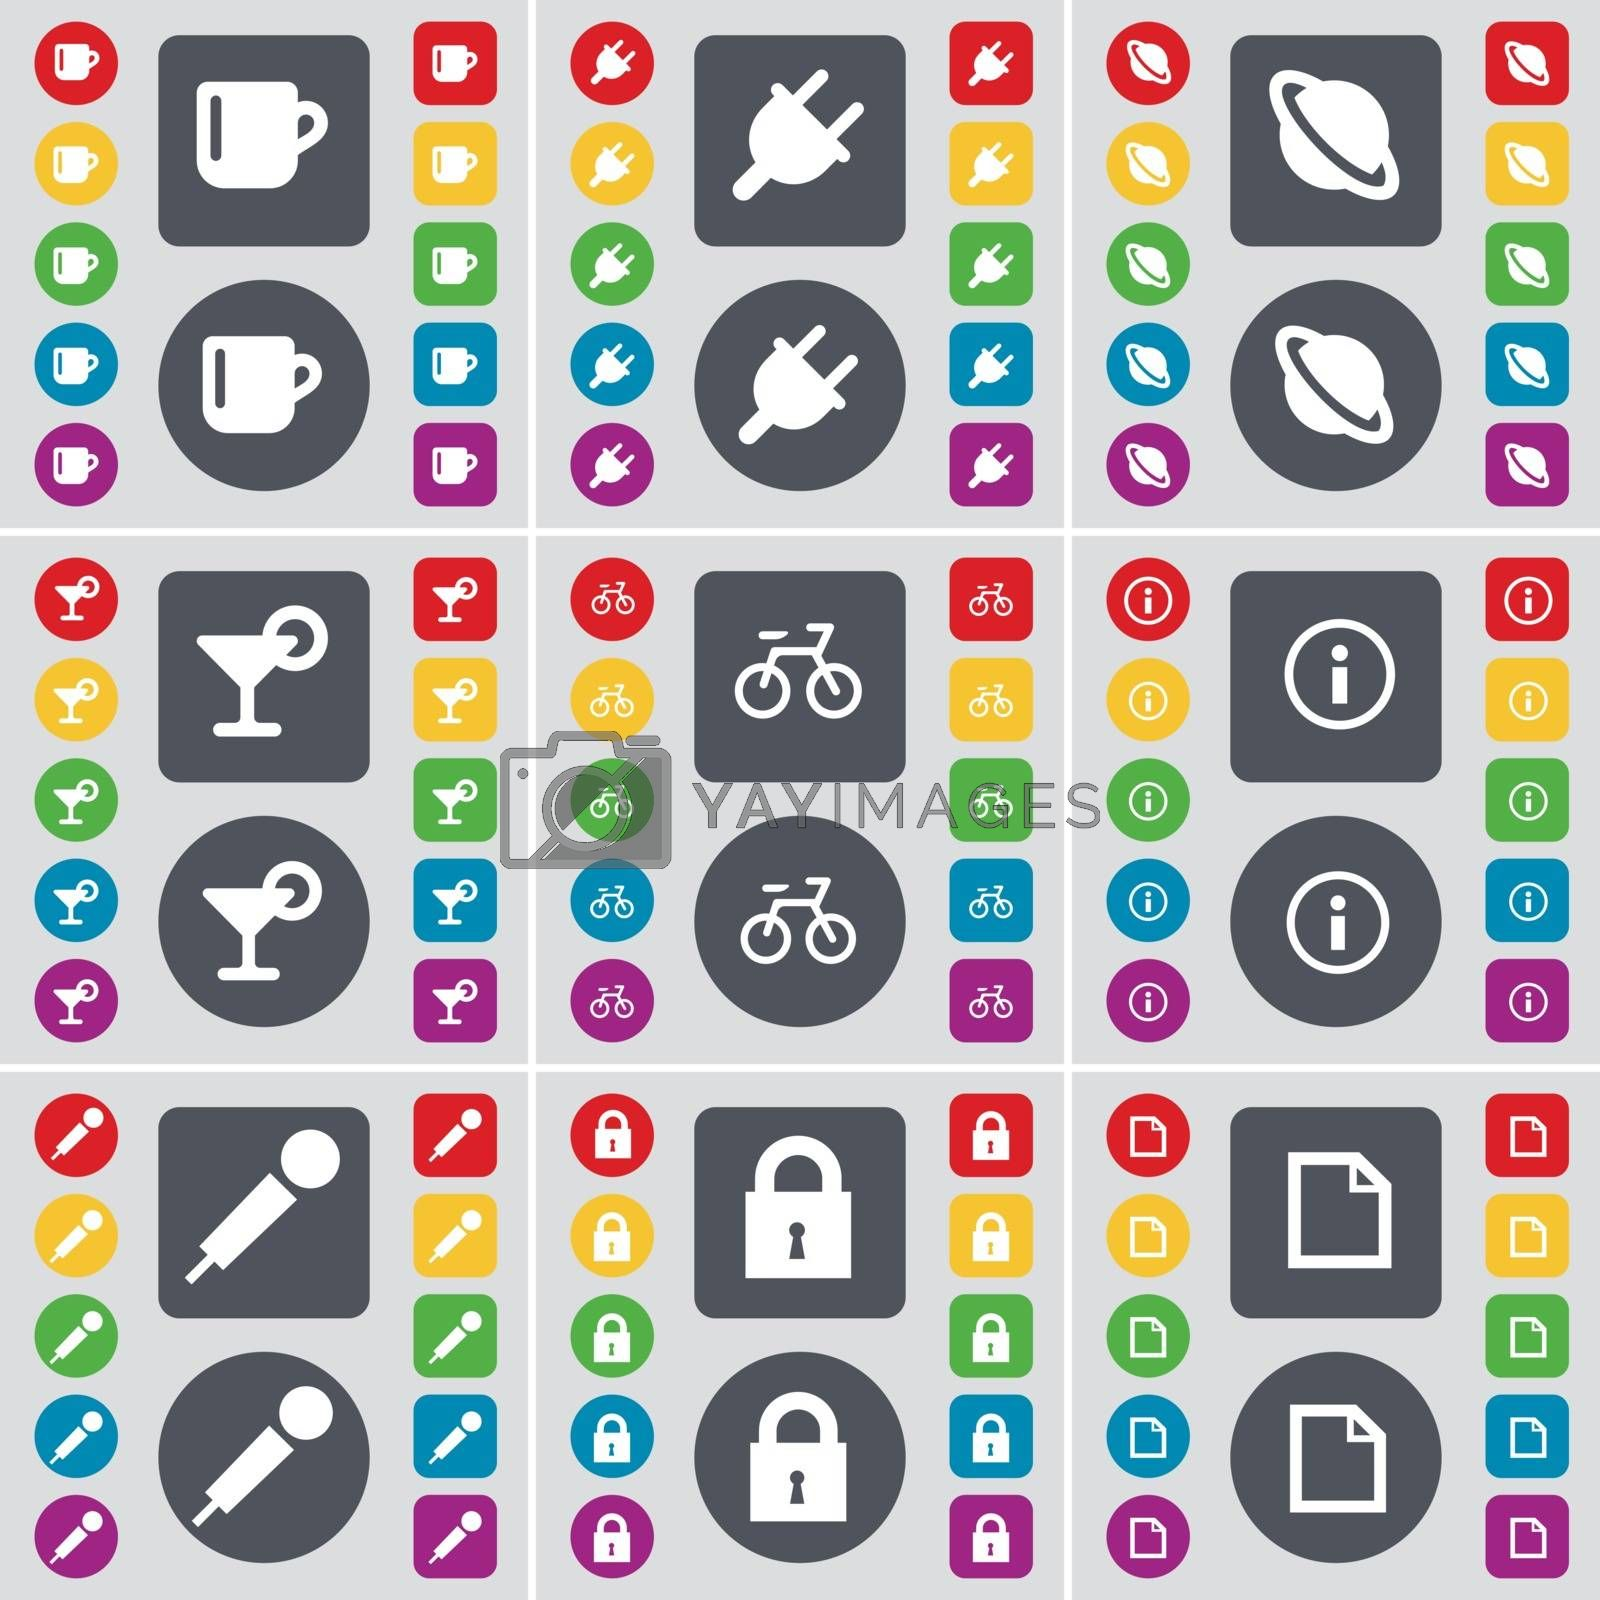 Royalty free image of Cup, Socket, Planet, Cocktail, Bicycle, Information, Microphone, Lock, File icon symbol. A large set of flat, colored buttons for your design. Vector by serhii_lohvyniuk